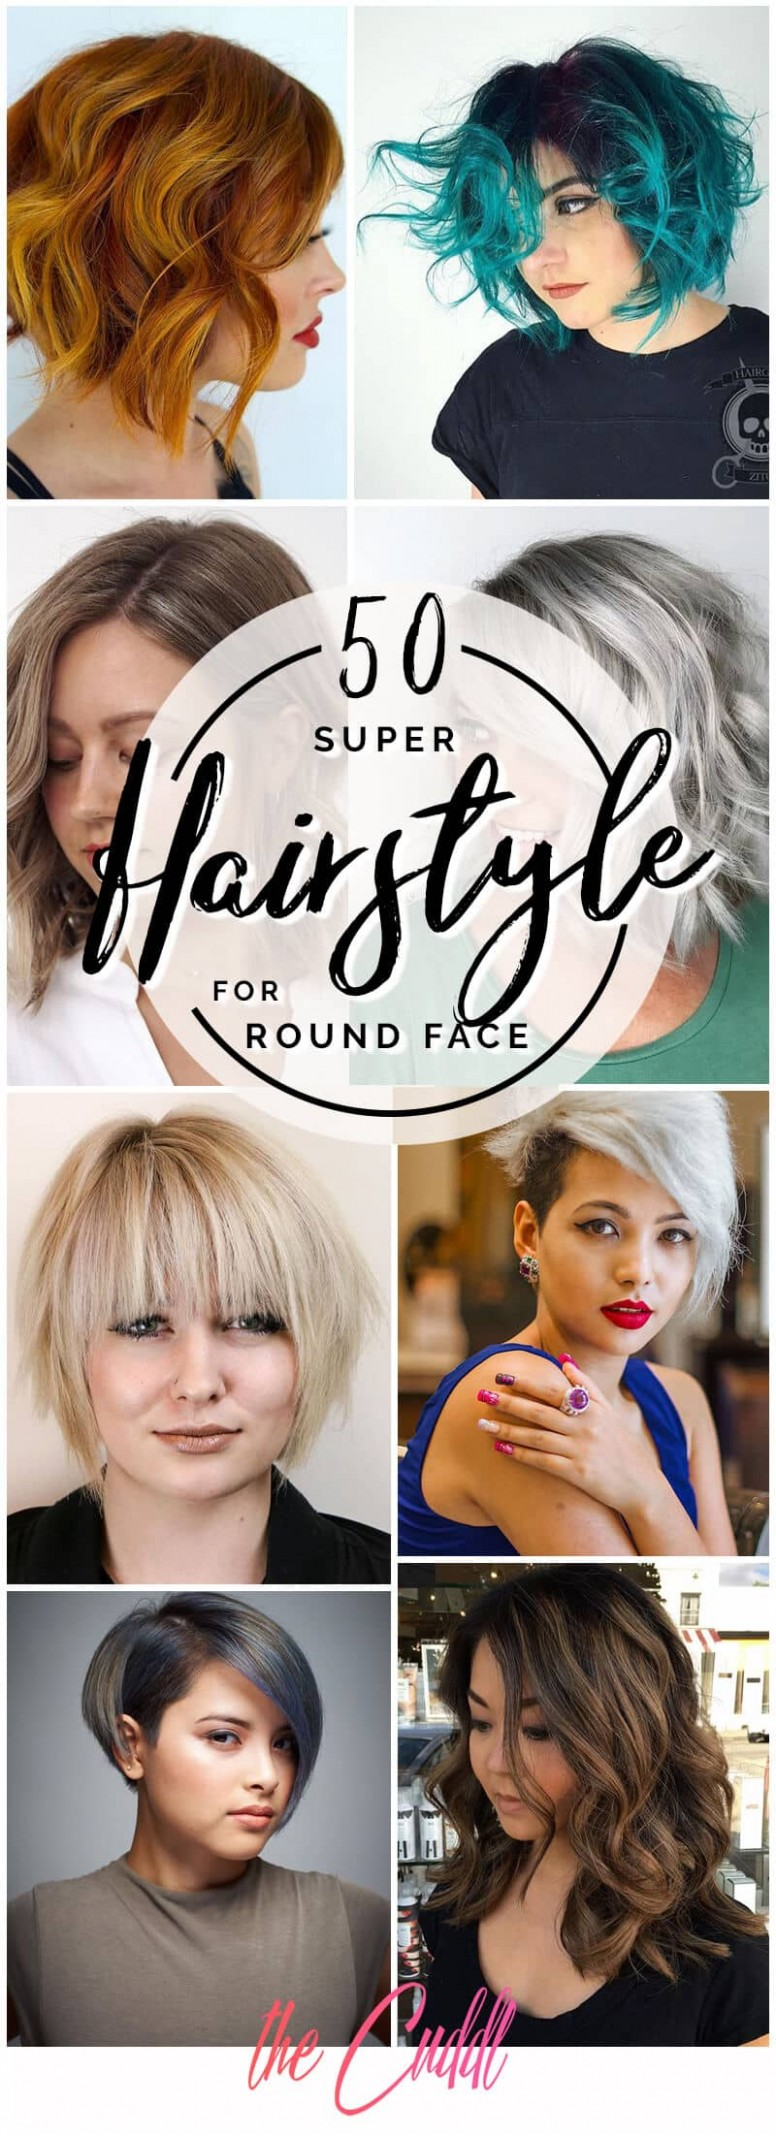 9 Fabulous Hairstyles for Round Faces to Upgrade Your Style in 9